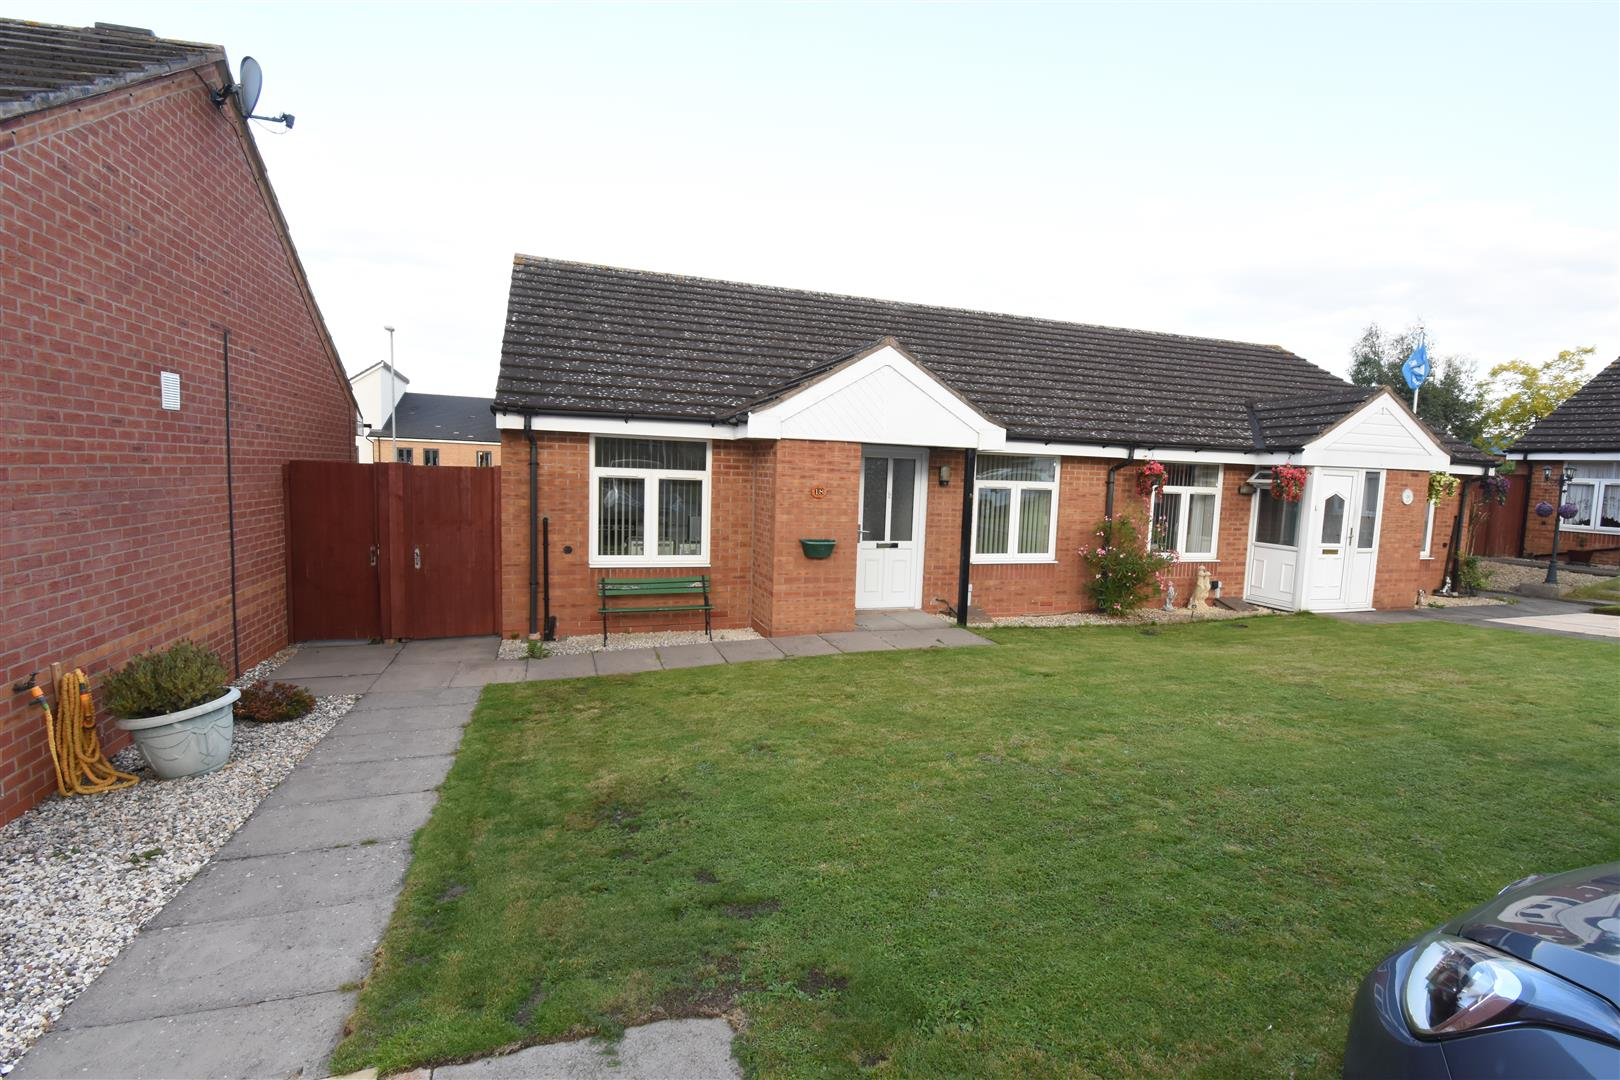 2 bed bungalow for sale in Wyegate Close, Smiths Wood, Birmingham 6